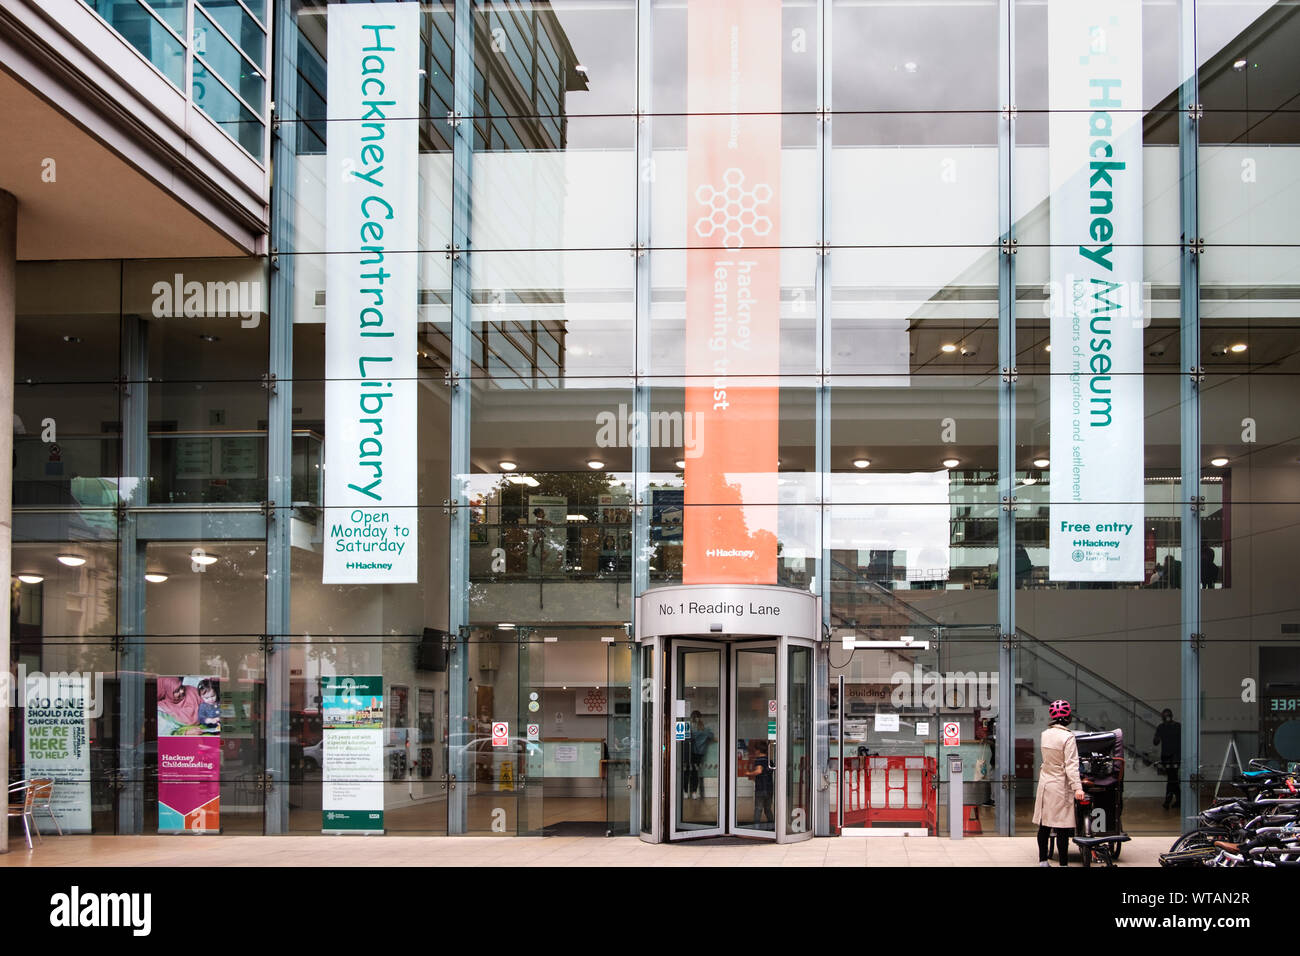 Hackney Central Library, Hackney Museum and Hackney Technology and Learning Centre at 1 Reading Lane,  E8 1GQ. East London, UK Stock Photo